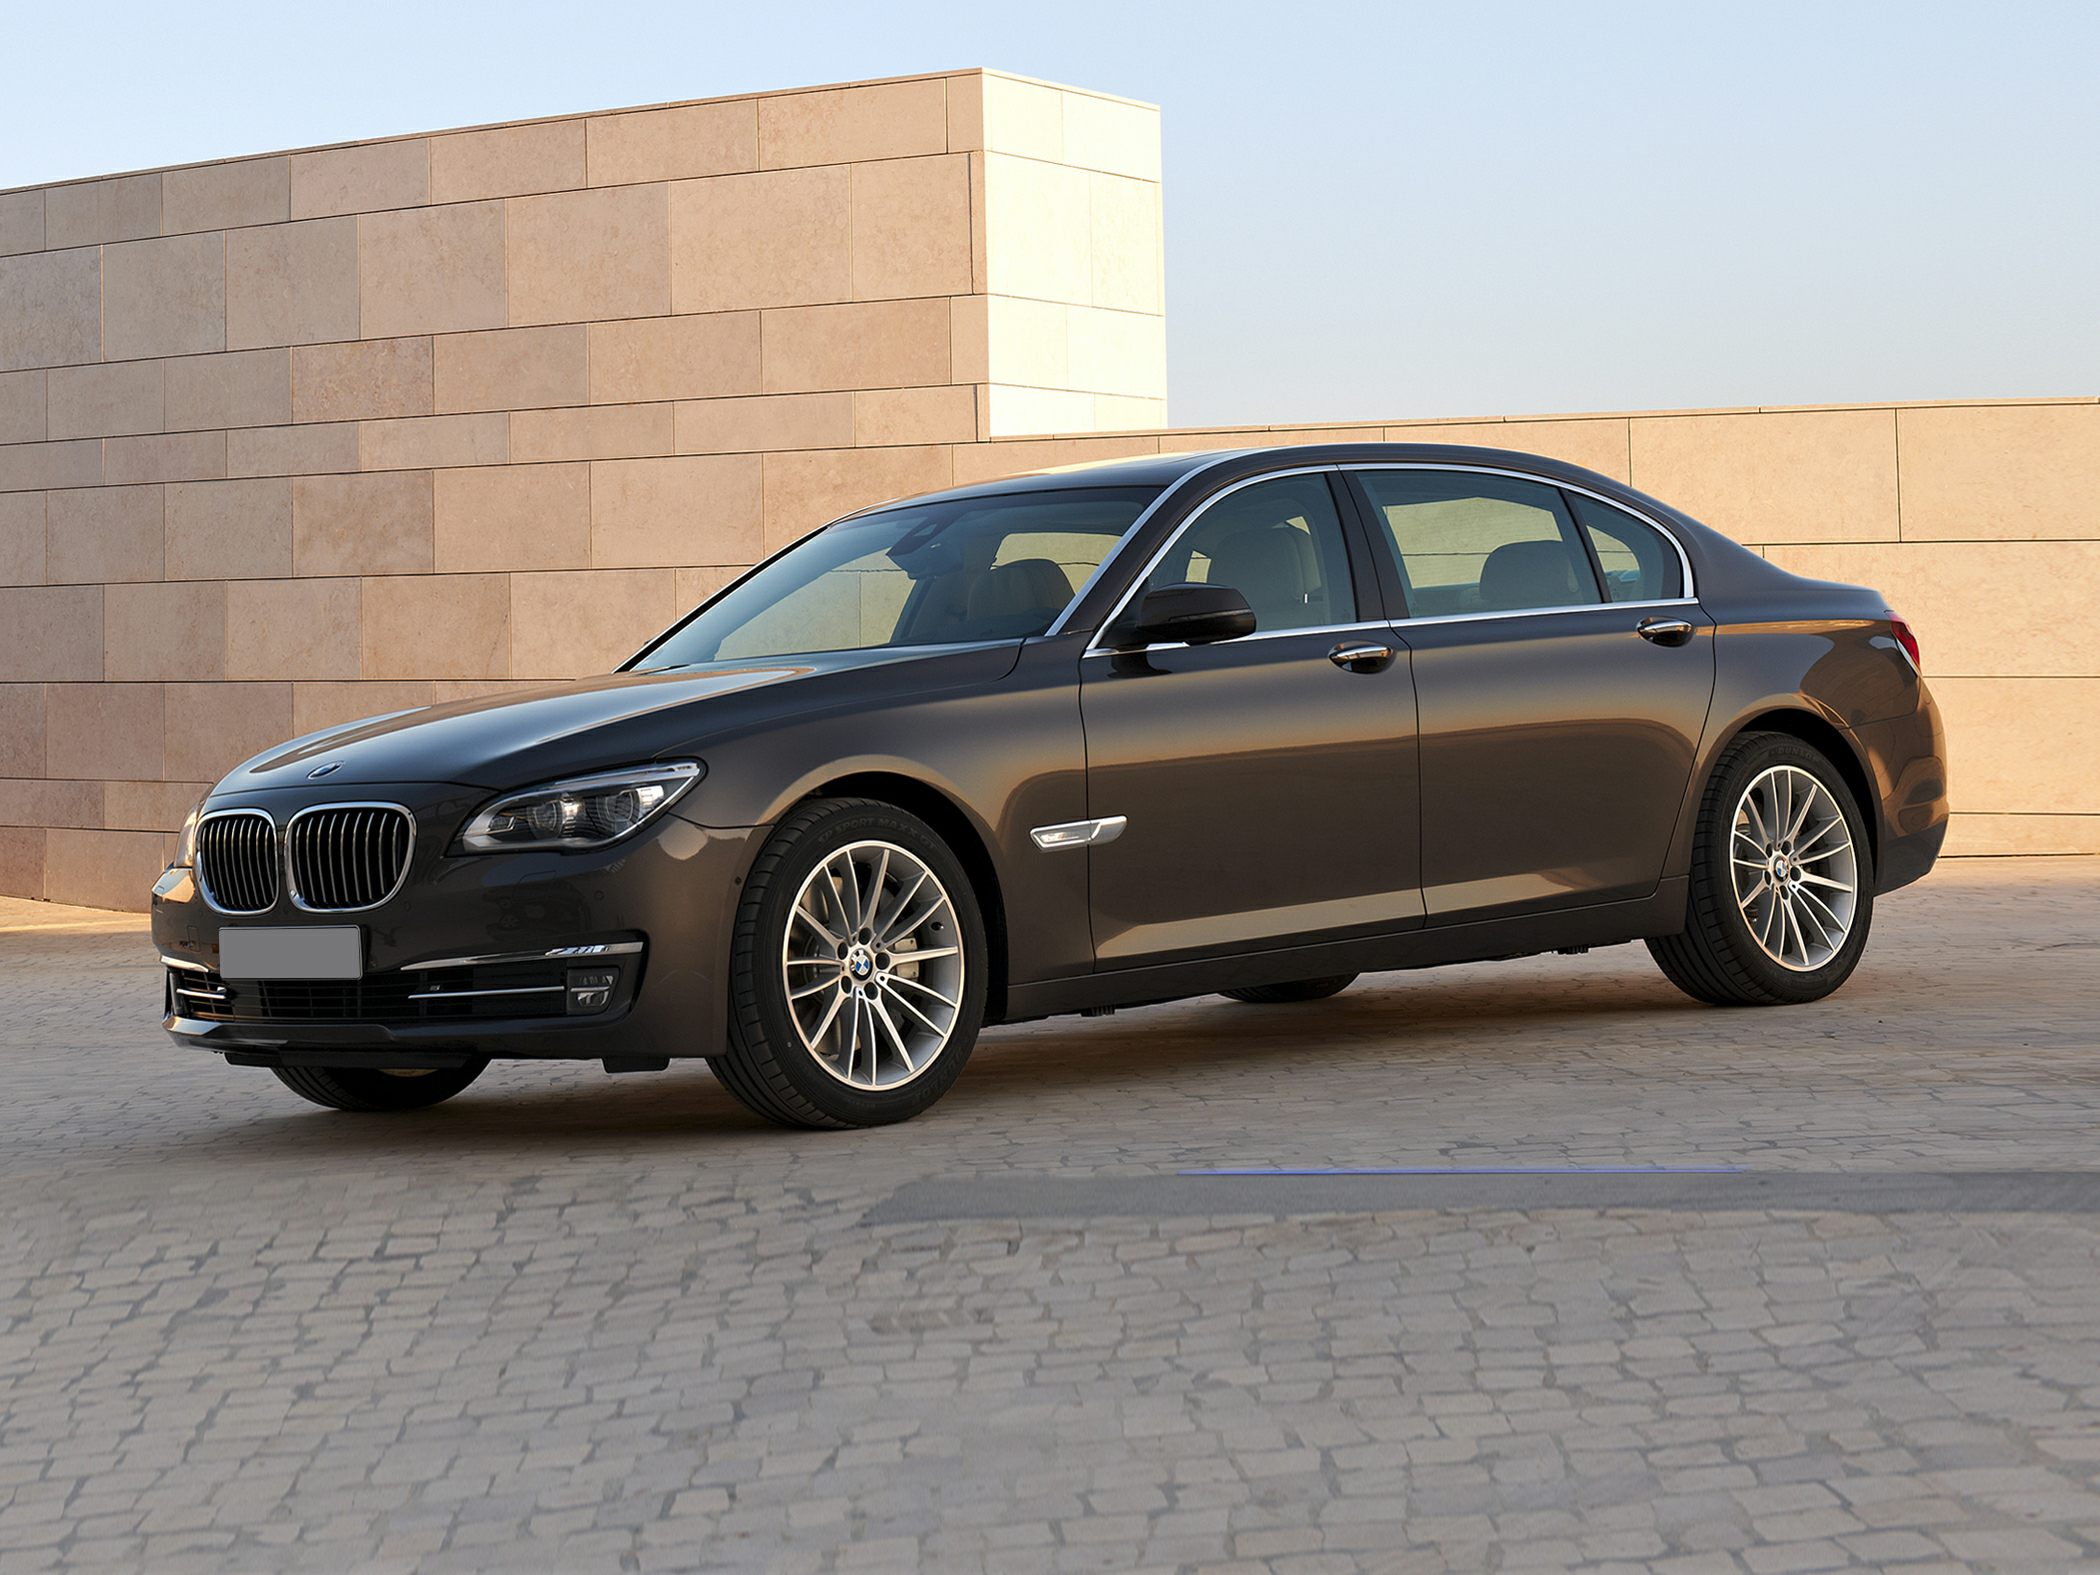 2014 BMW 740 Glamour front